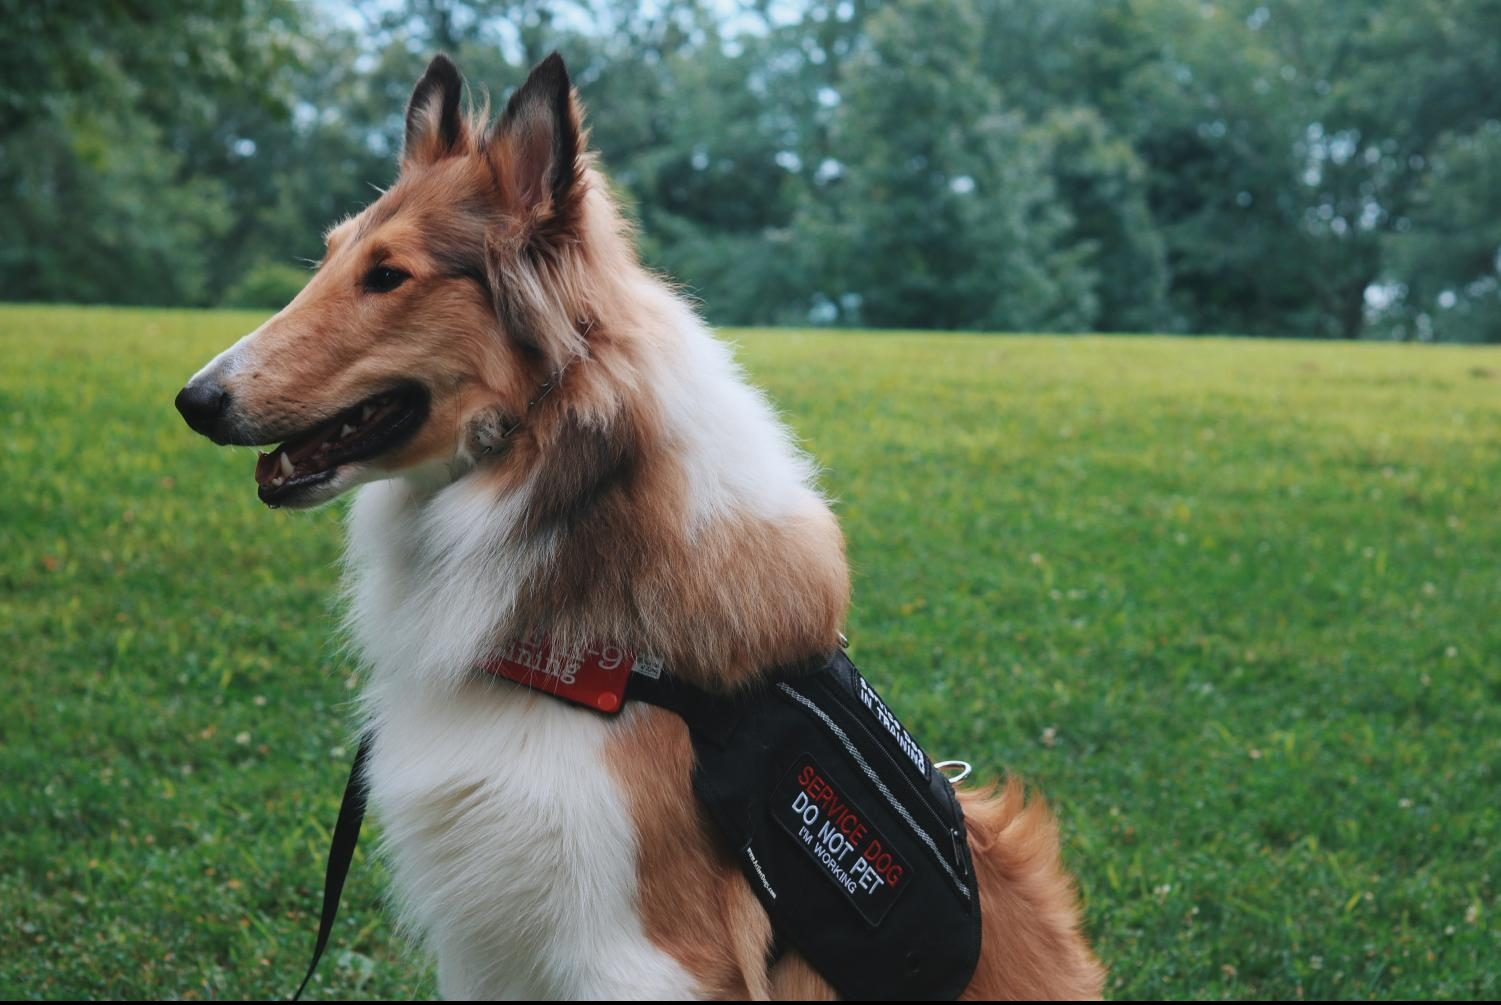 Levi, a 9-month-old Rough Collie, wears his service vest, signaling he is on-duty.